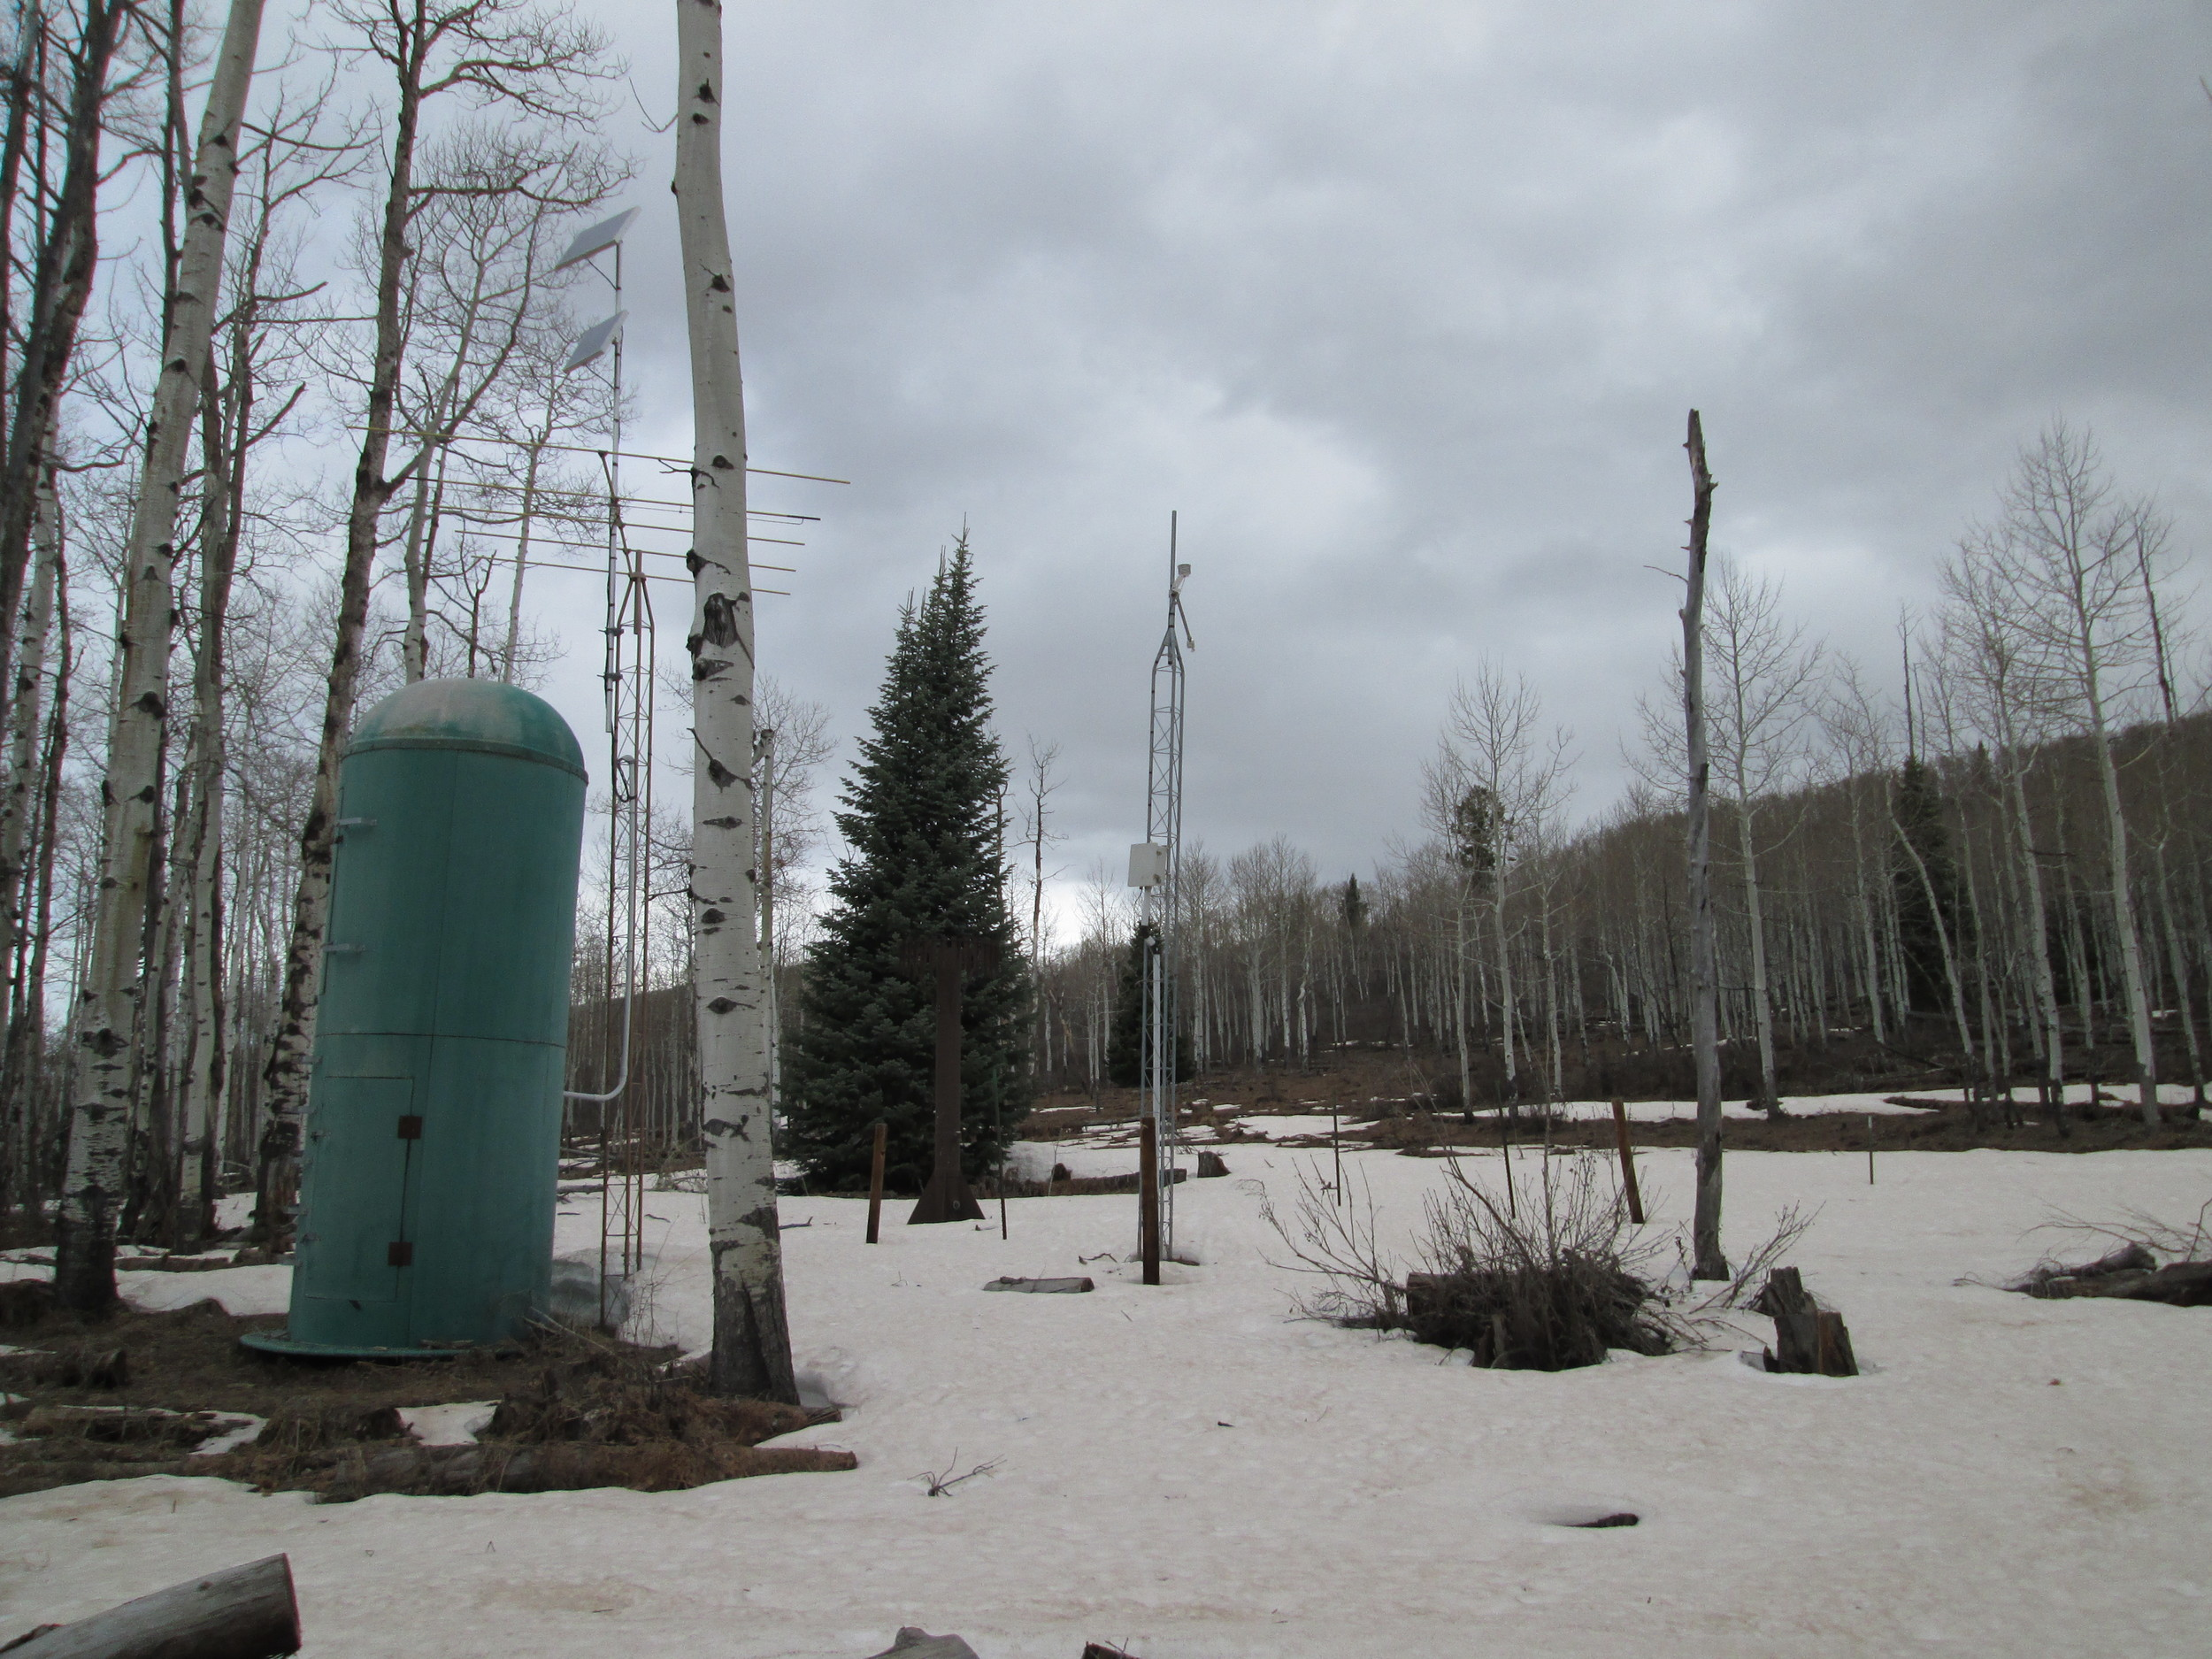 The McClure Pass Snotel station with very thin snowcover, and the dry CODOS snow profile slope in the distance, directly behind the center mast.